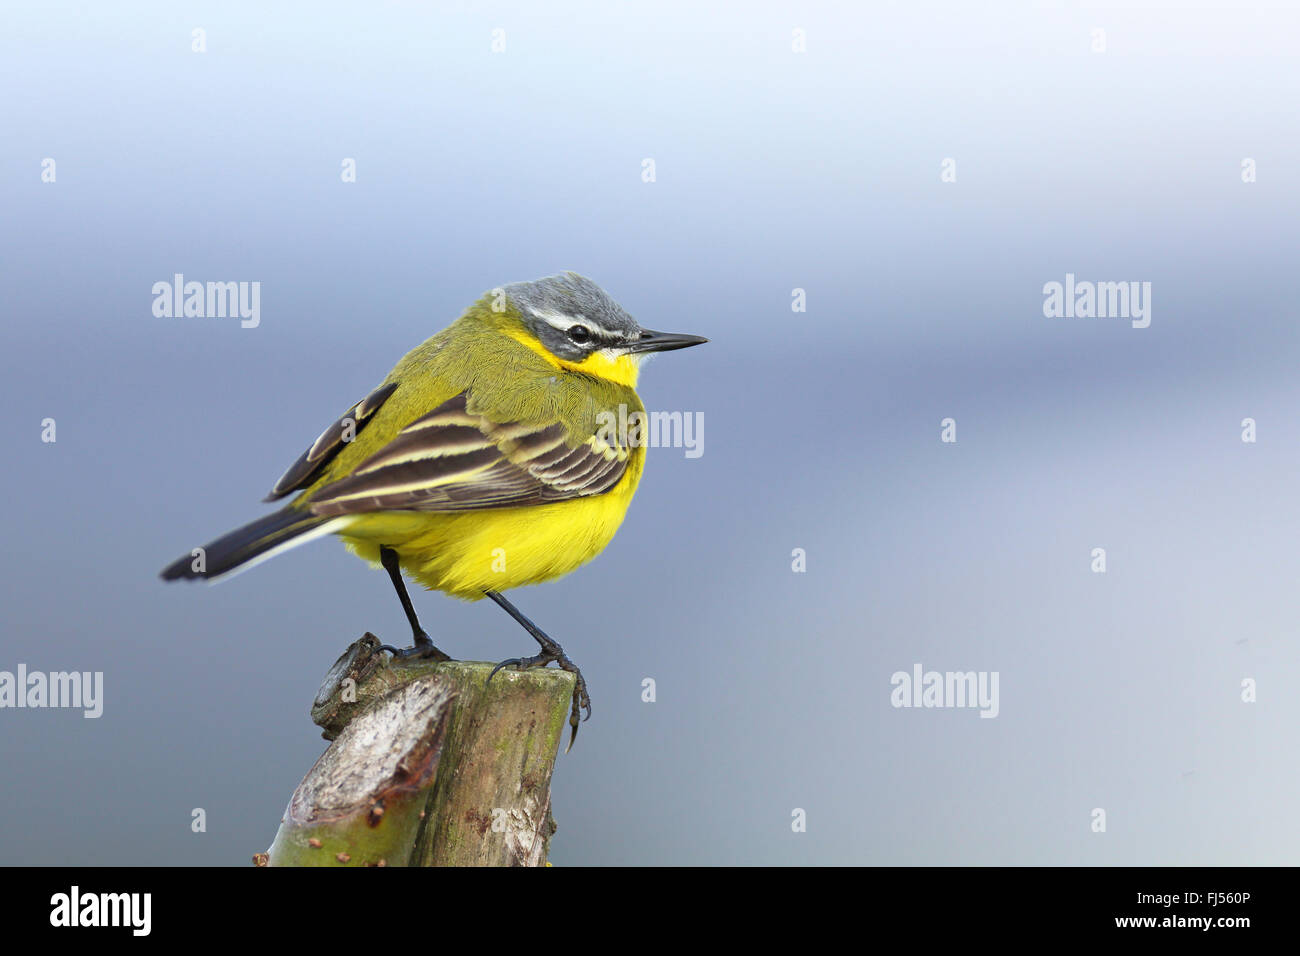 Yellow wagtail (Motacilla flava), male sitting on a fence post, Netherlands, Frisia - Stock Image